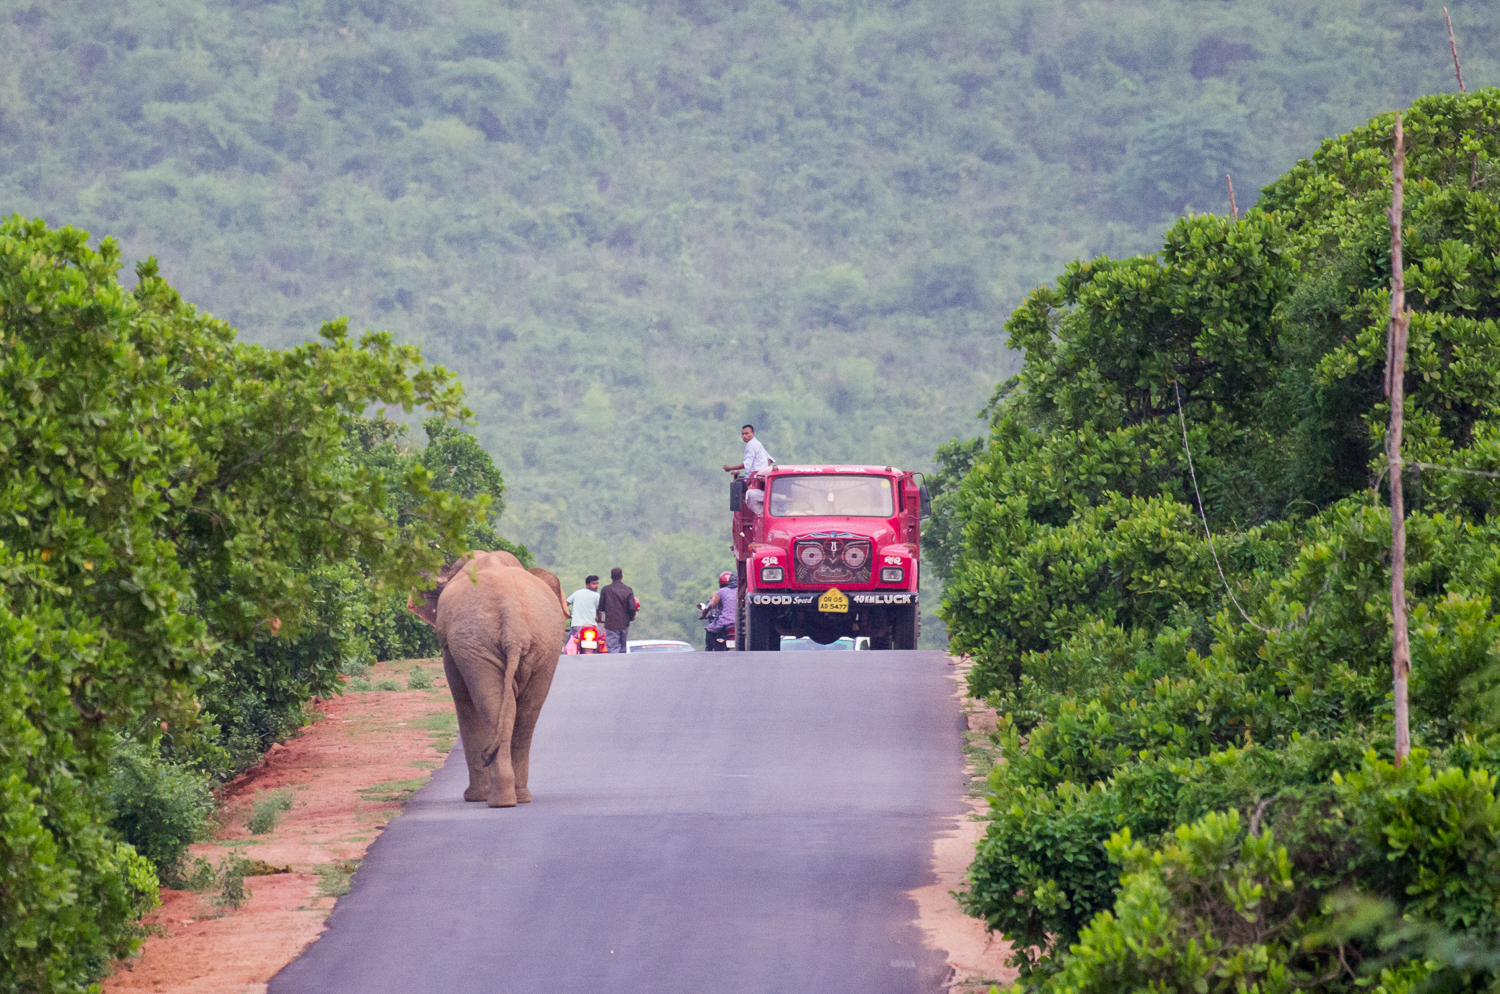 elephants and infrastructure